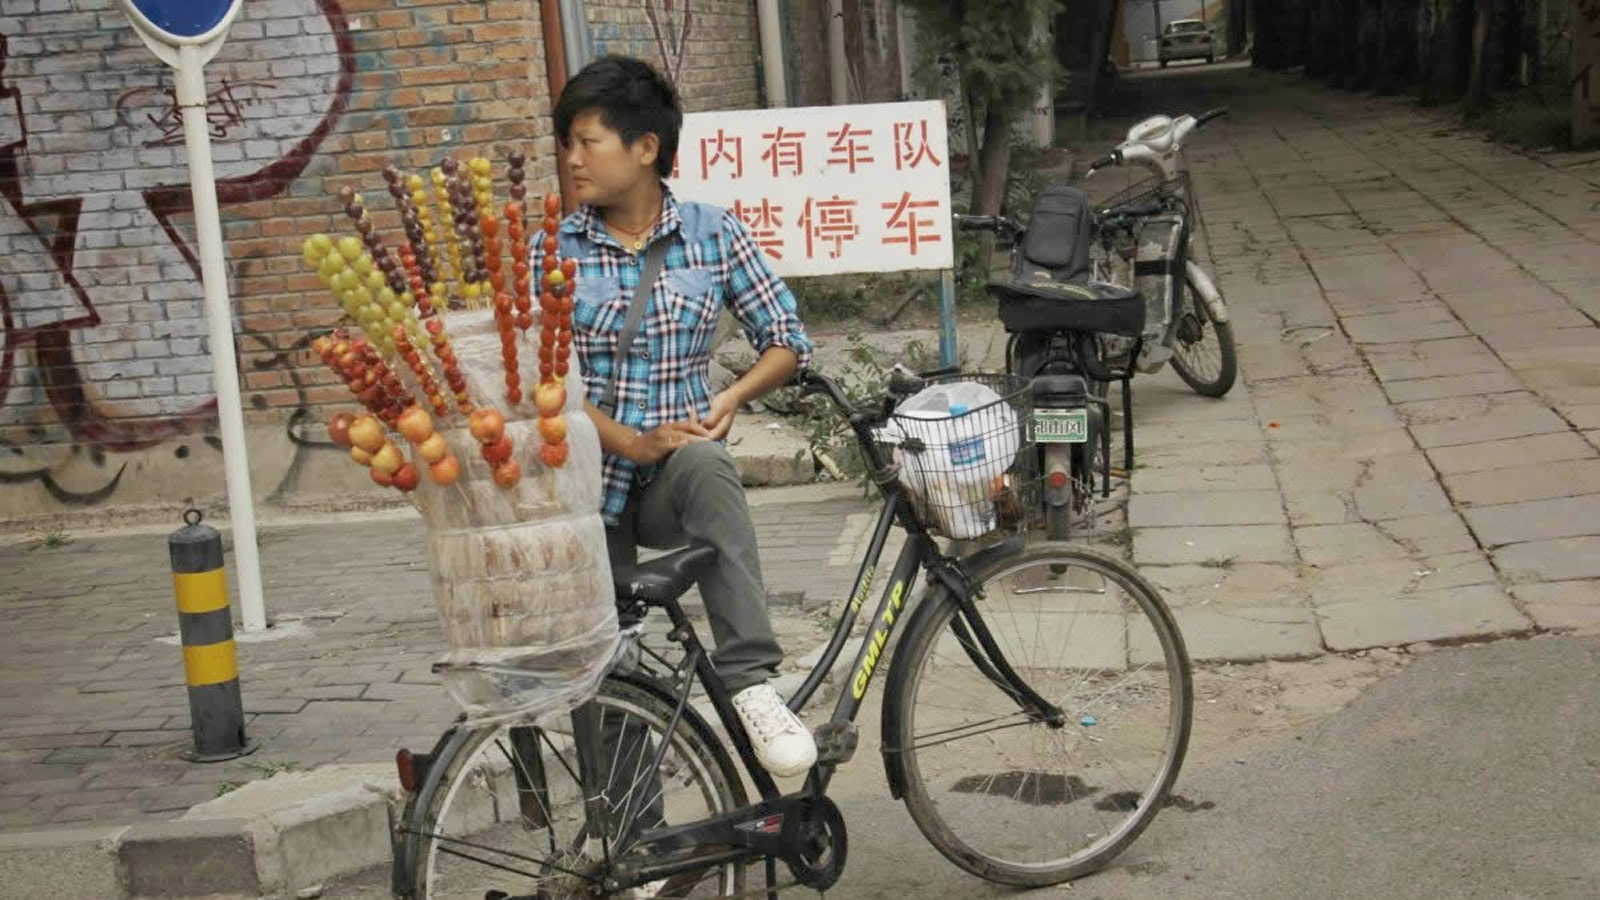 Market Vendor on Bicycle in Nepal